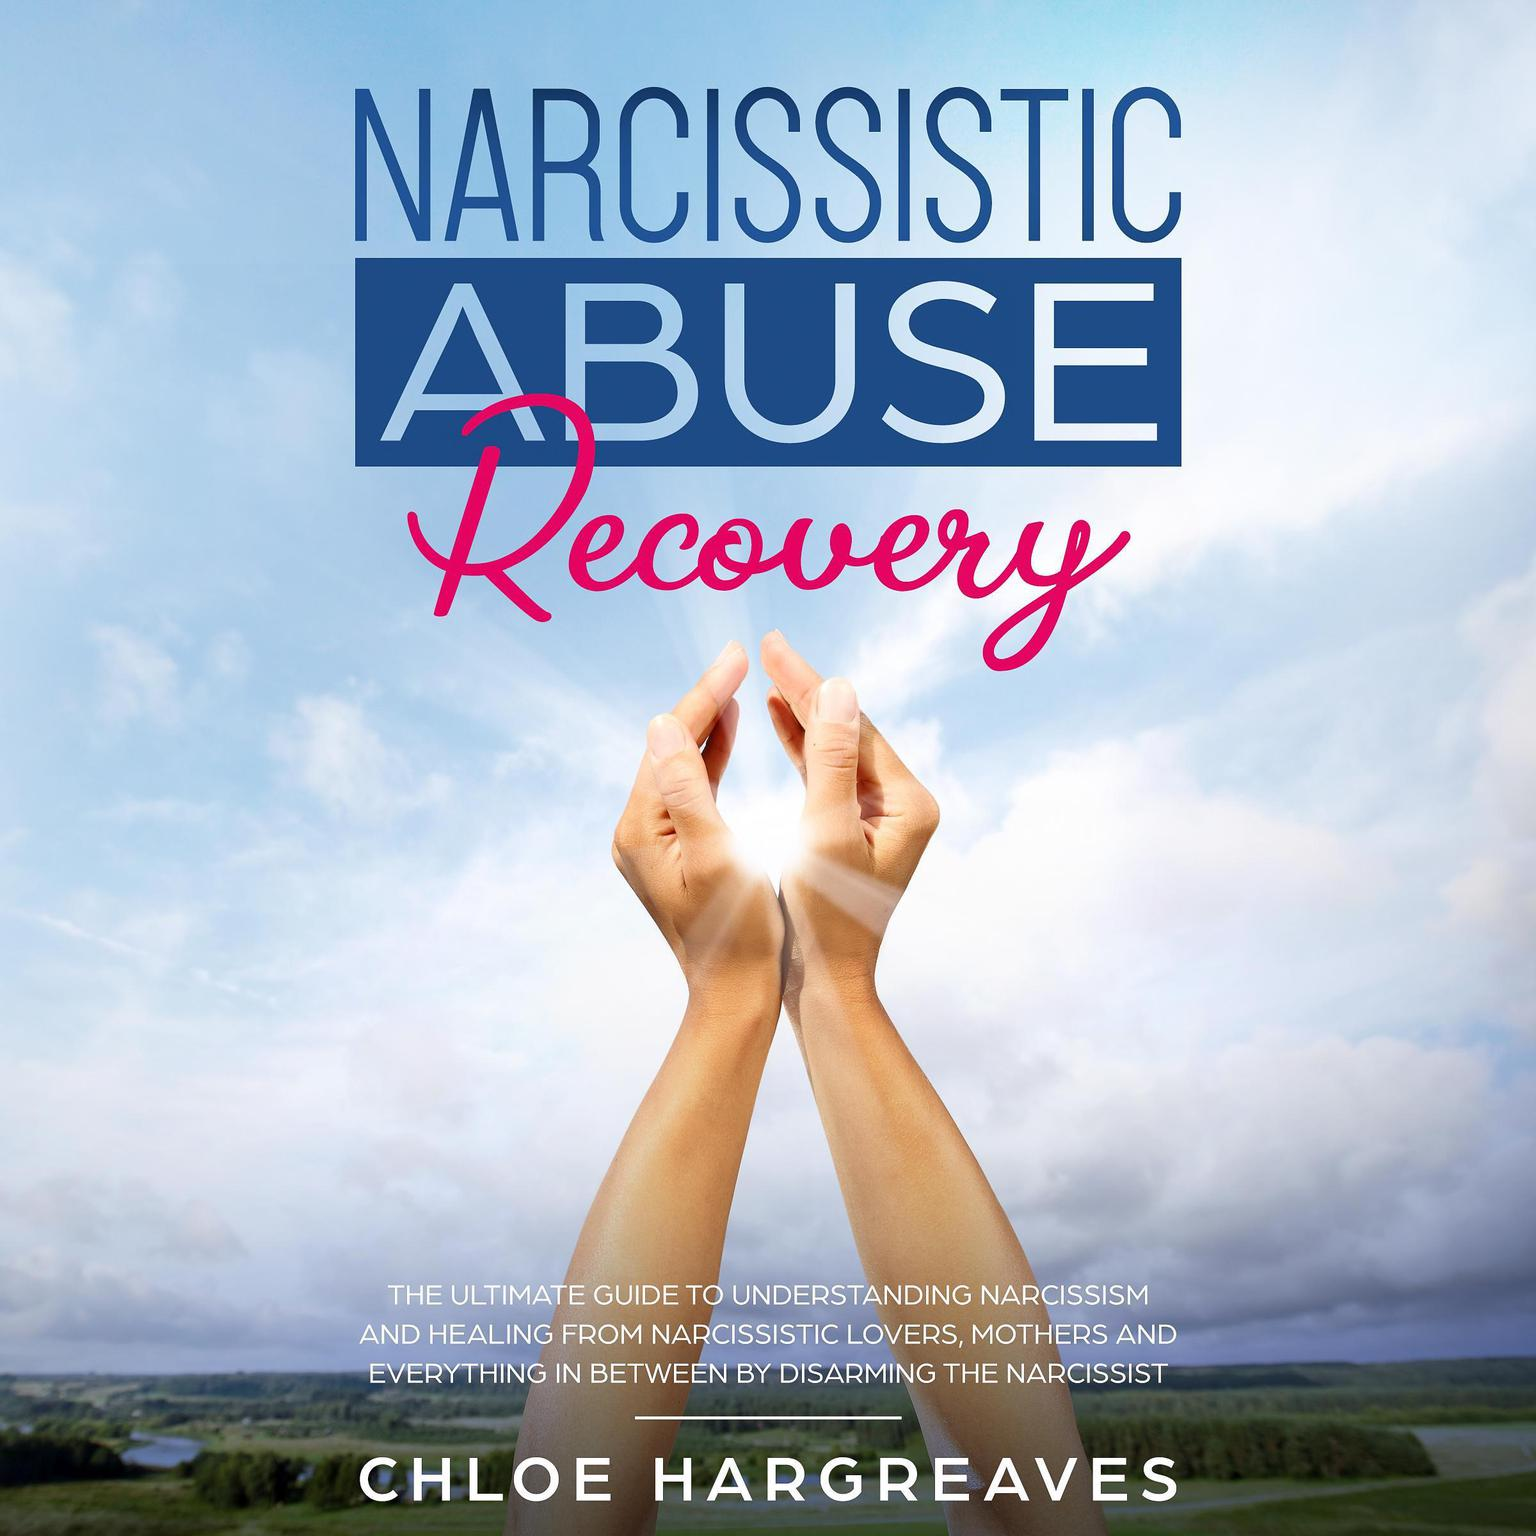 Narcissistic Abuse Recovery: The Ultimate Guide to Understanding Narcissism and Healing from Narcissistic Lovers, Mothers and Everything In Between by Disarming the Narcissist Audiobook, by Chloe Hargreaves